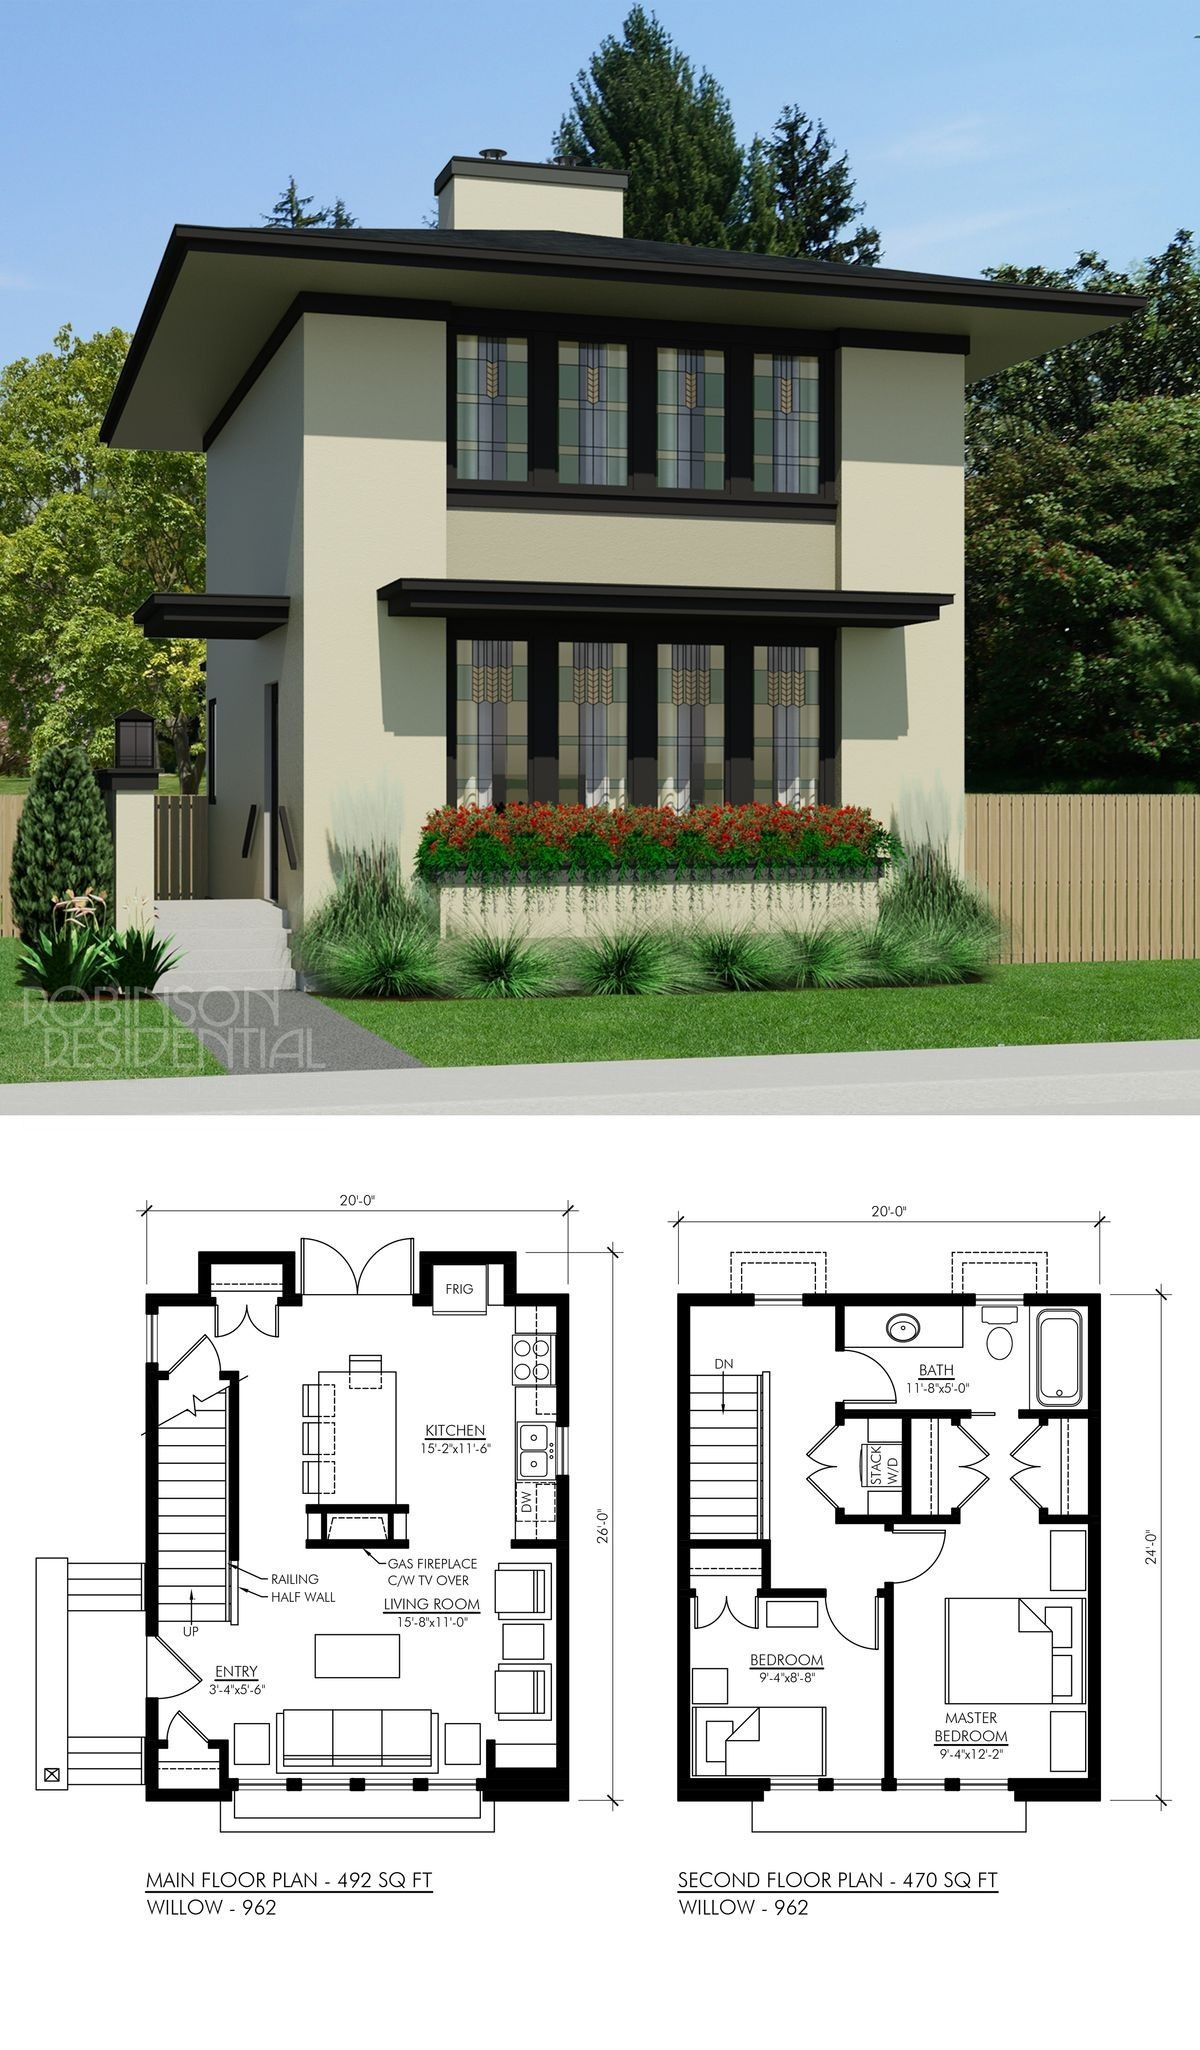 Pin By Ryan On Mimari Proje Fotograf Detay Prairie Style Houses House Plans House Floor Plans